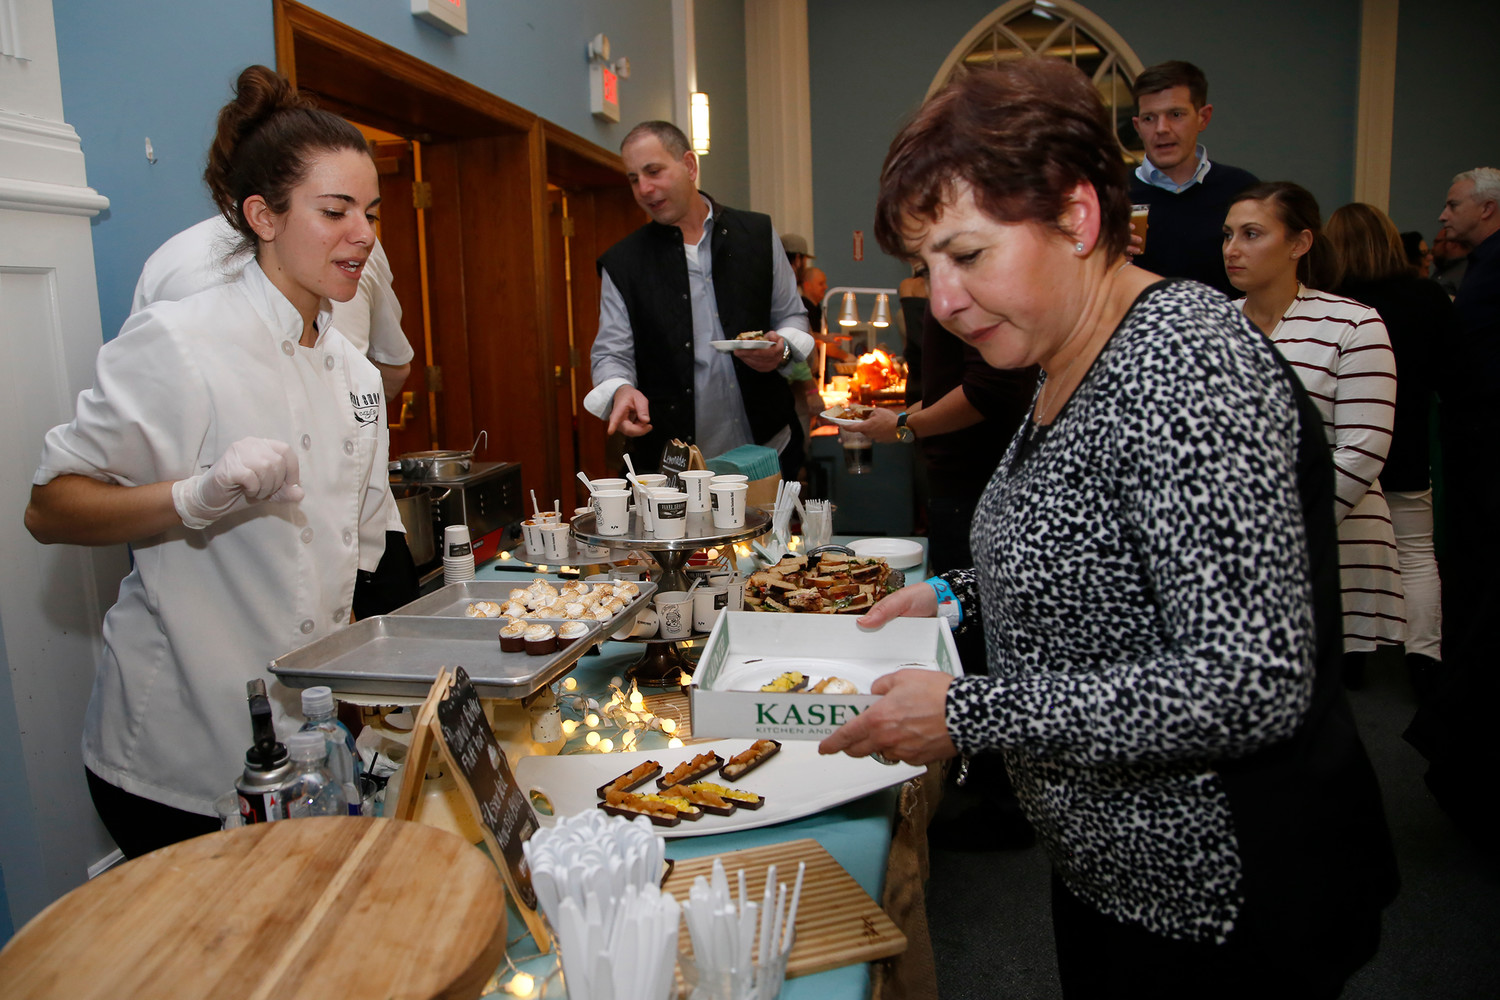 Brittany Improte, of The Flour Shoppe Cafe, offered goodies to Michelle Vitalo at the Taste of Rockville Centre event on Jan. 26.